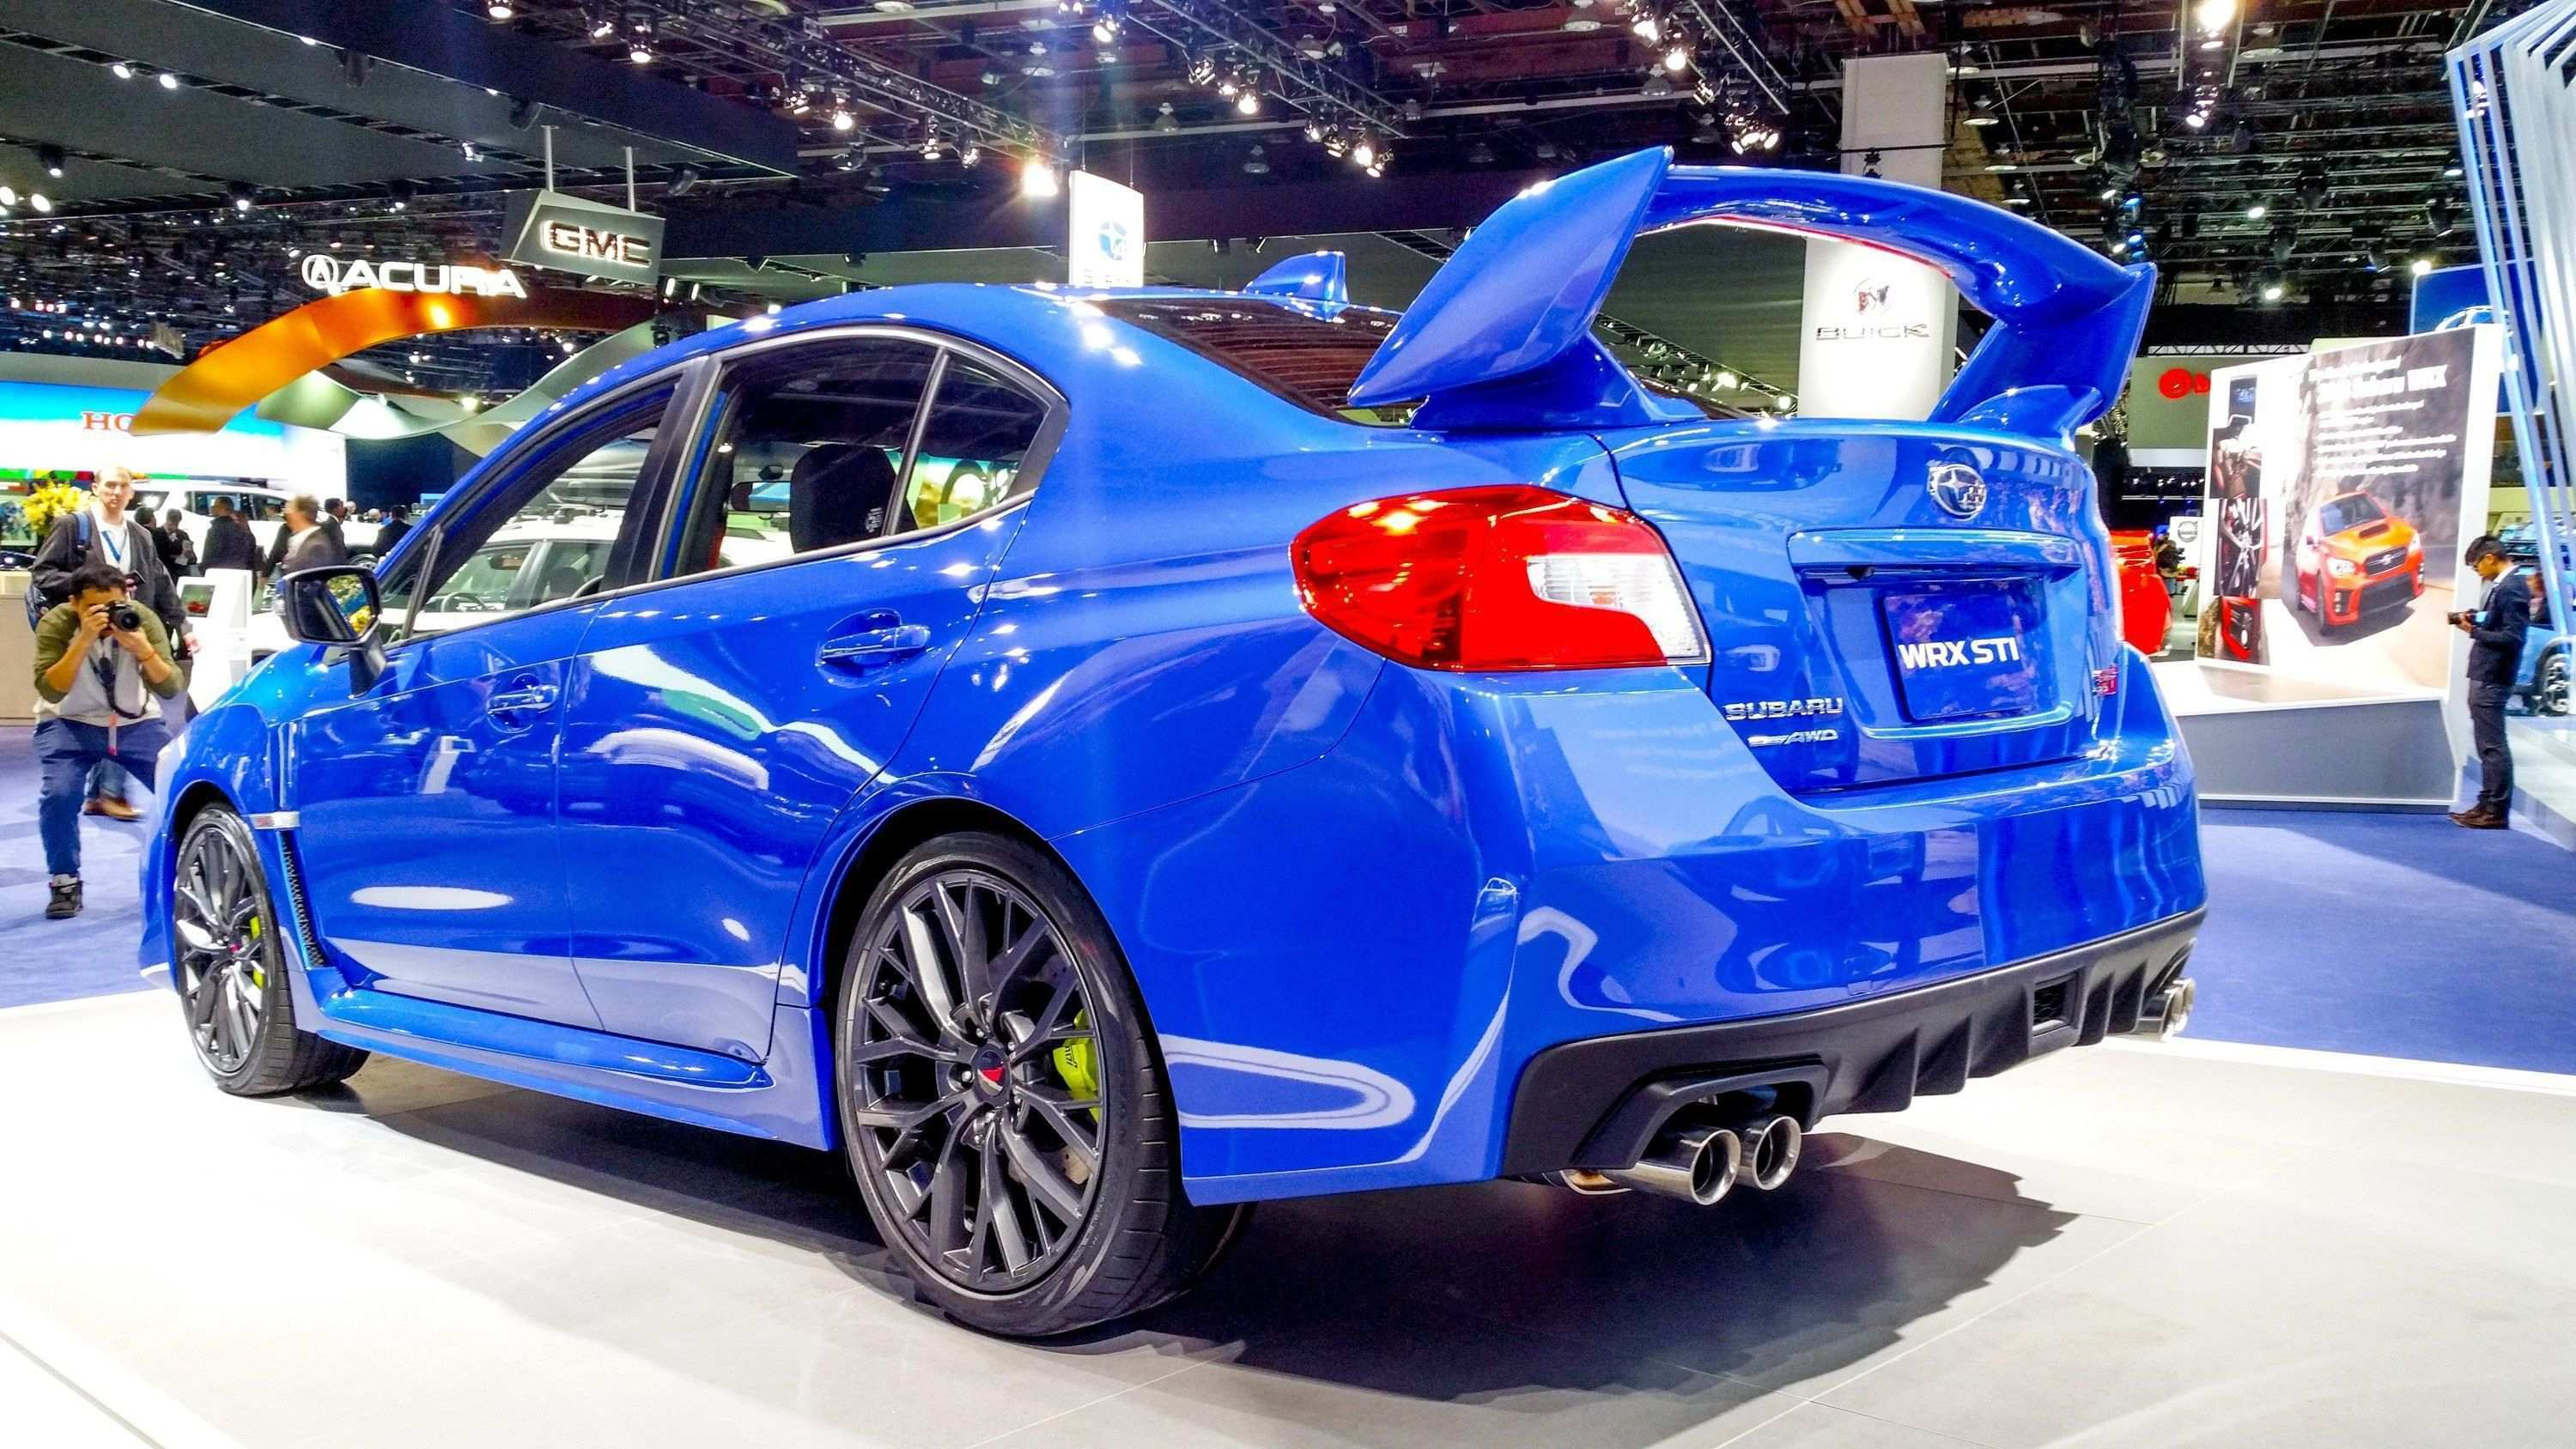 19 Concept of Subaru Wrx 2019 Release Date Specs and Review with Subaru Wrx 2019 Release Date